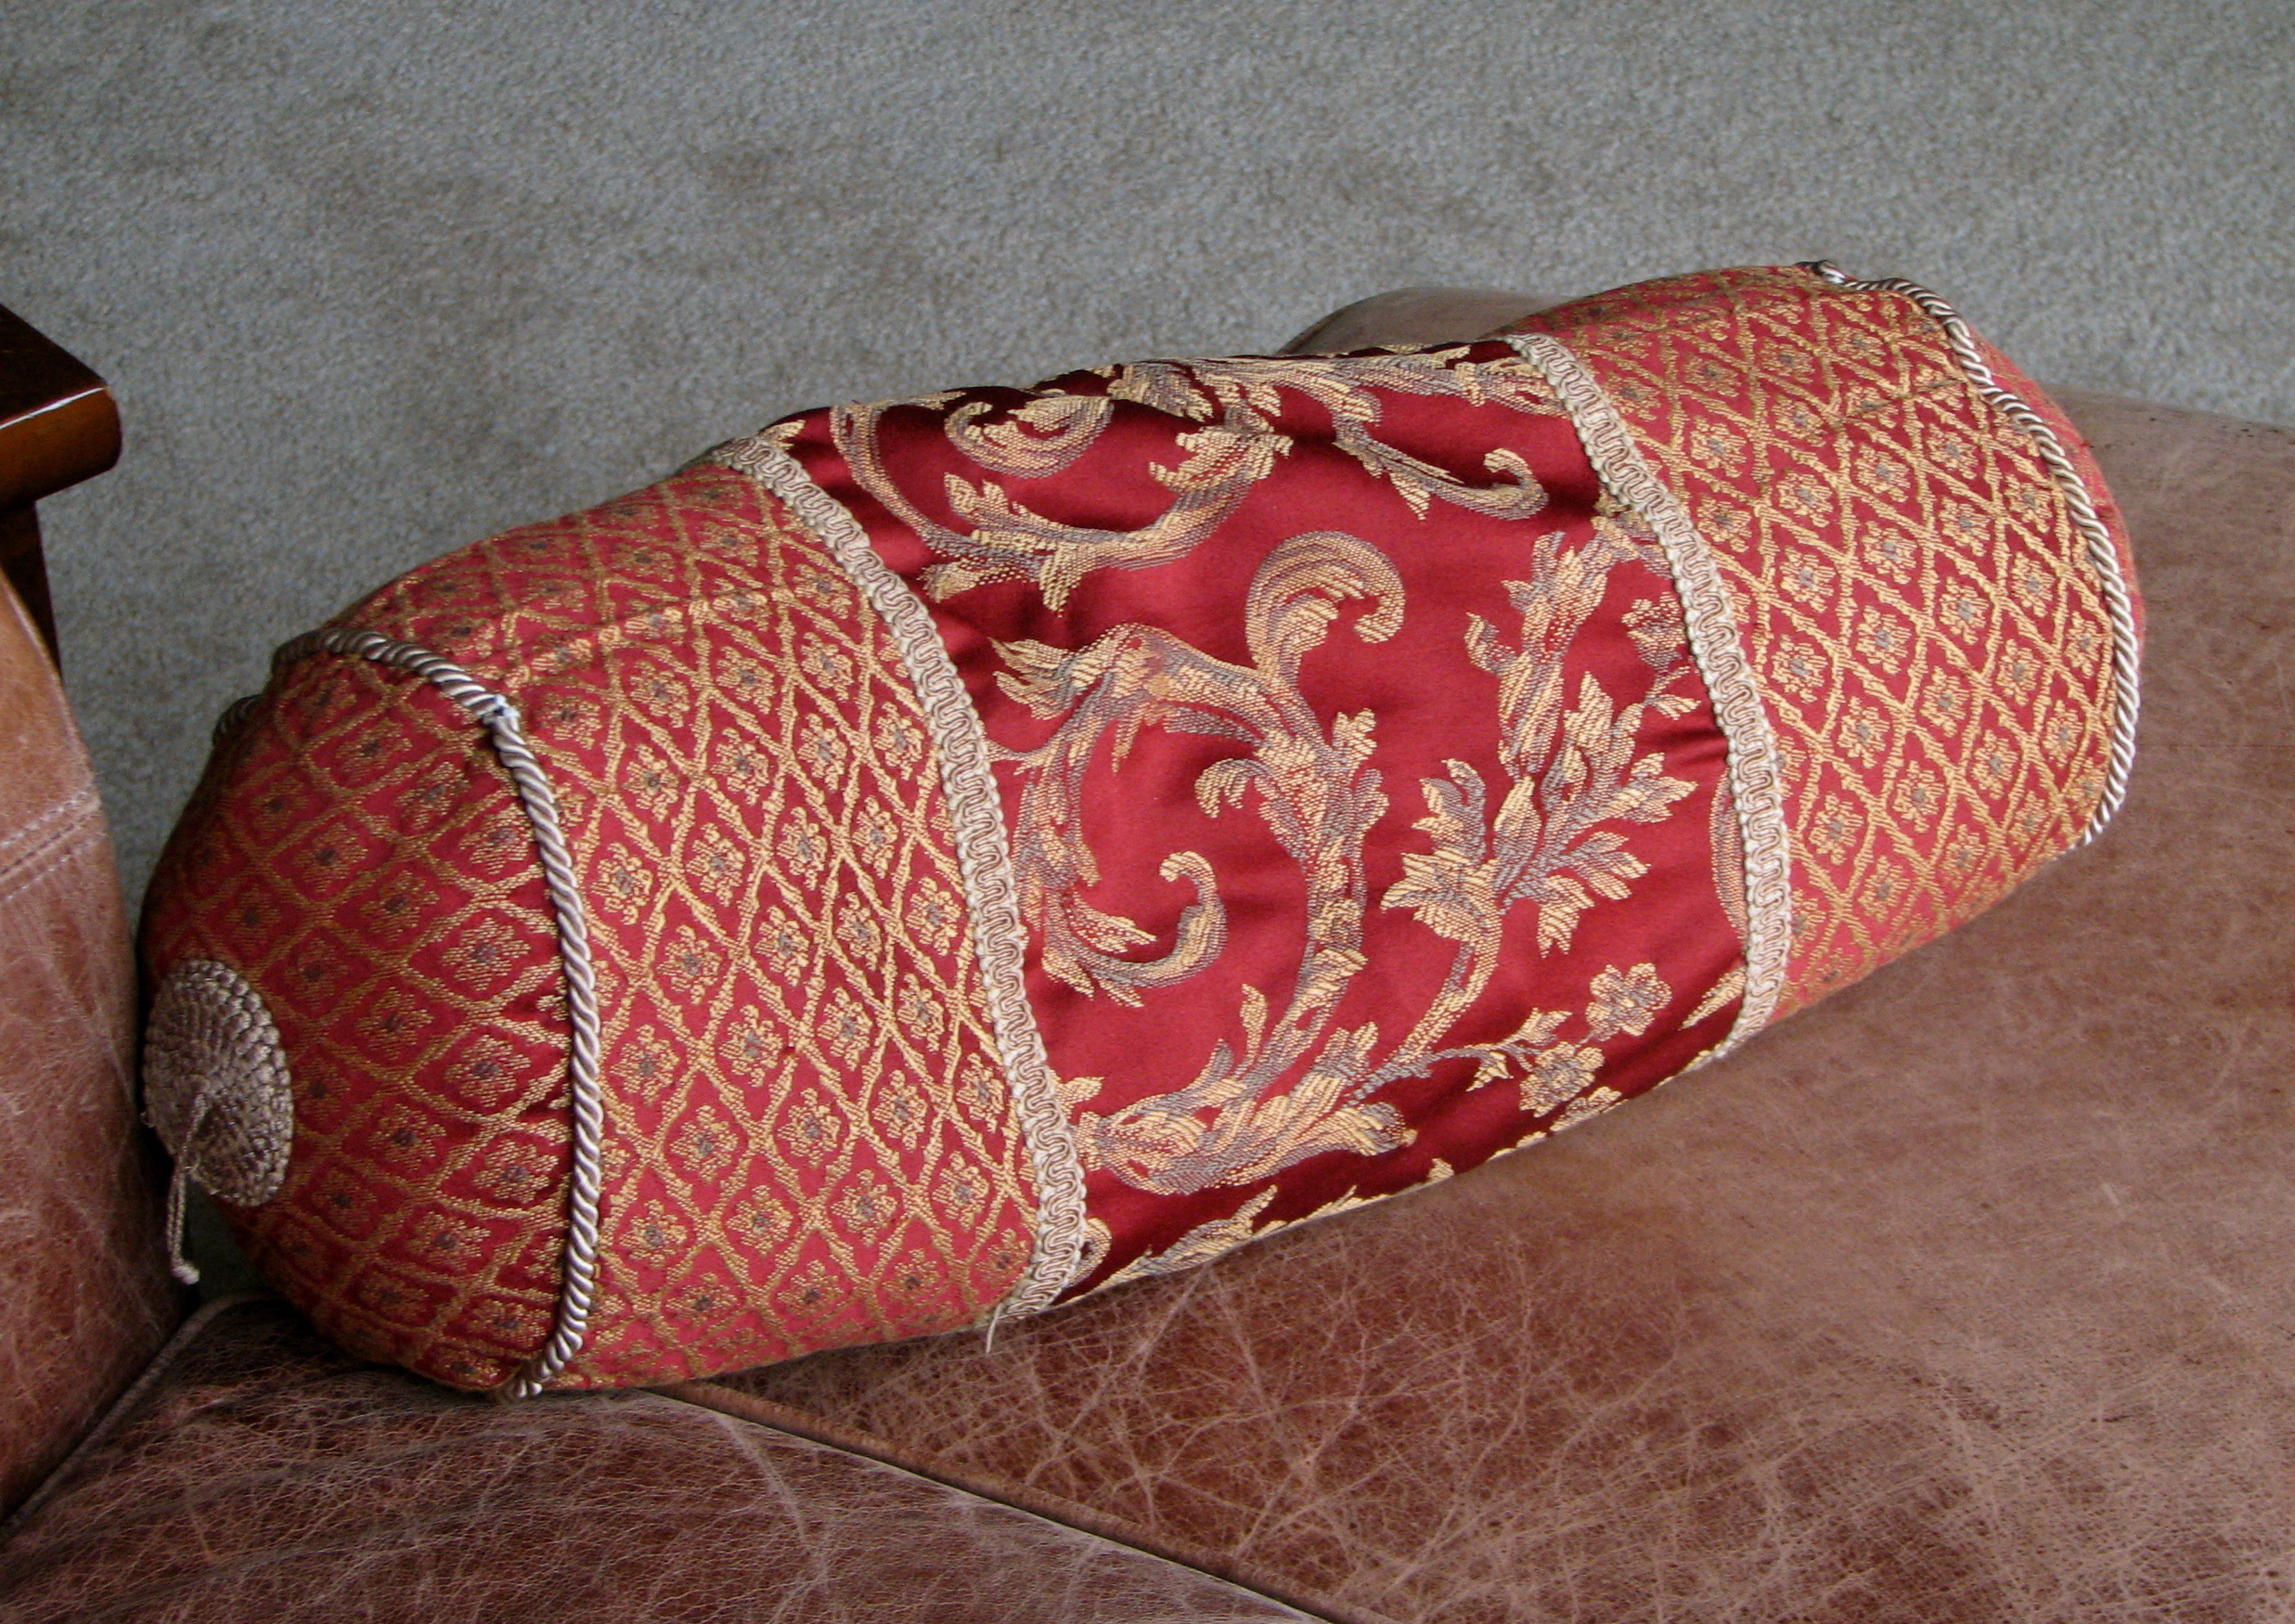 Types Of Decorative Pillow : File:Throw Pillow.JPG - Wikimedia Commons